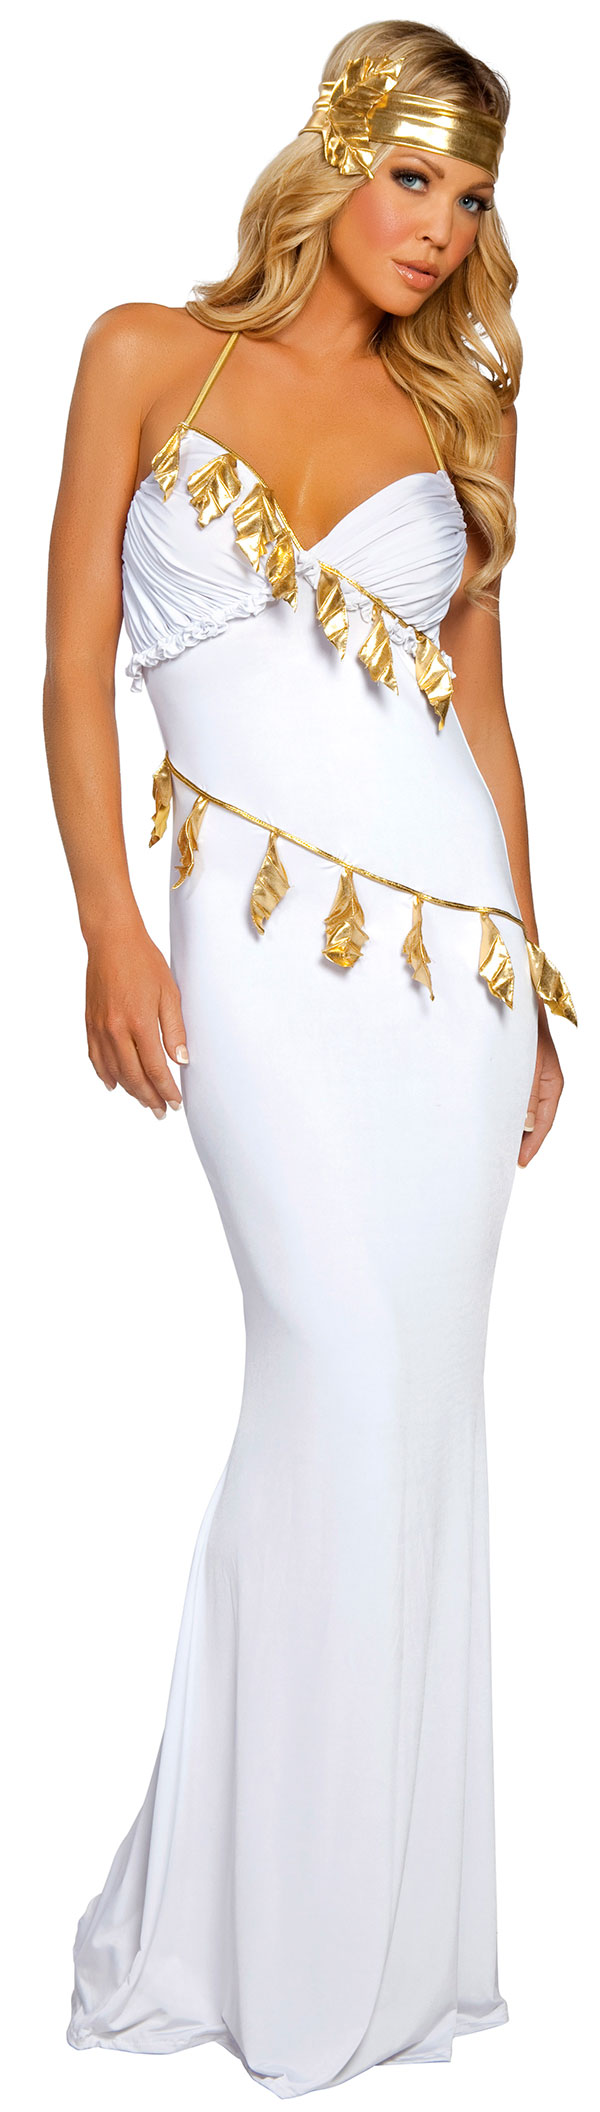 hera greek goddess costume | Greek Goddess Hera Costume ...